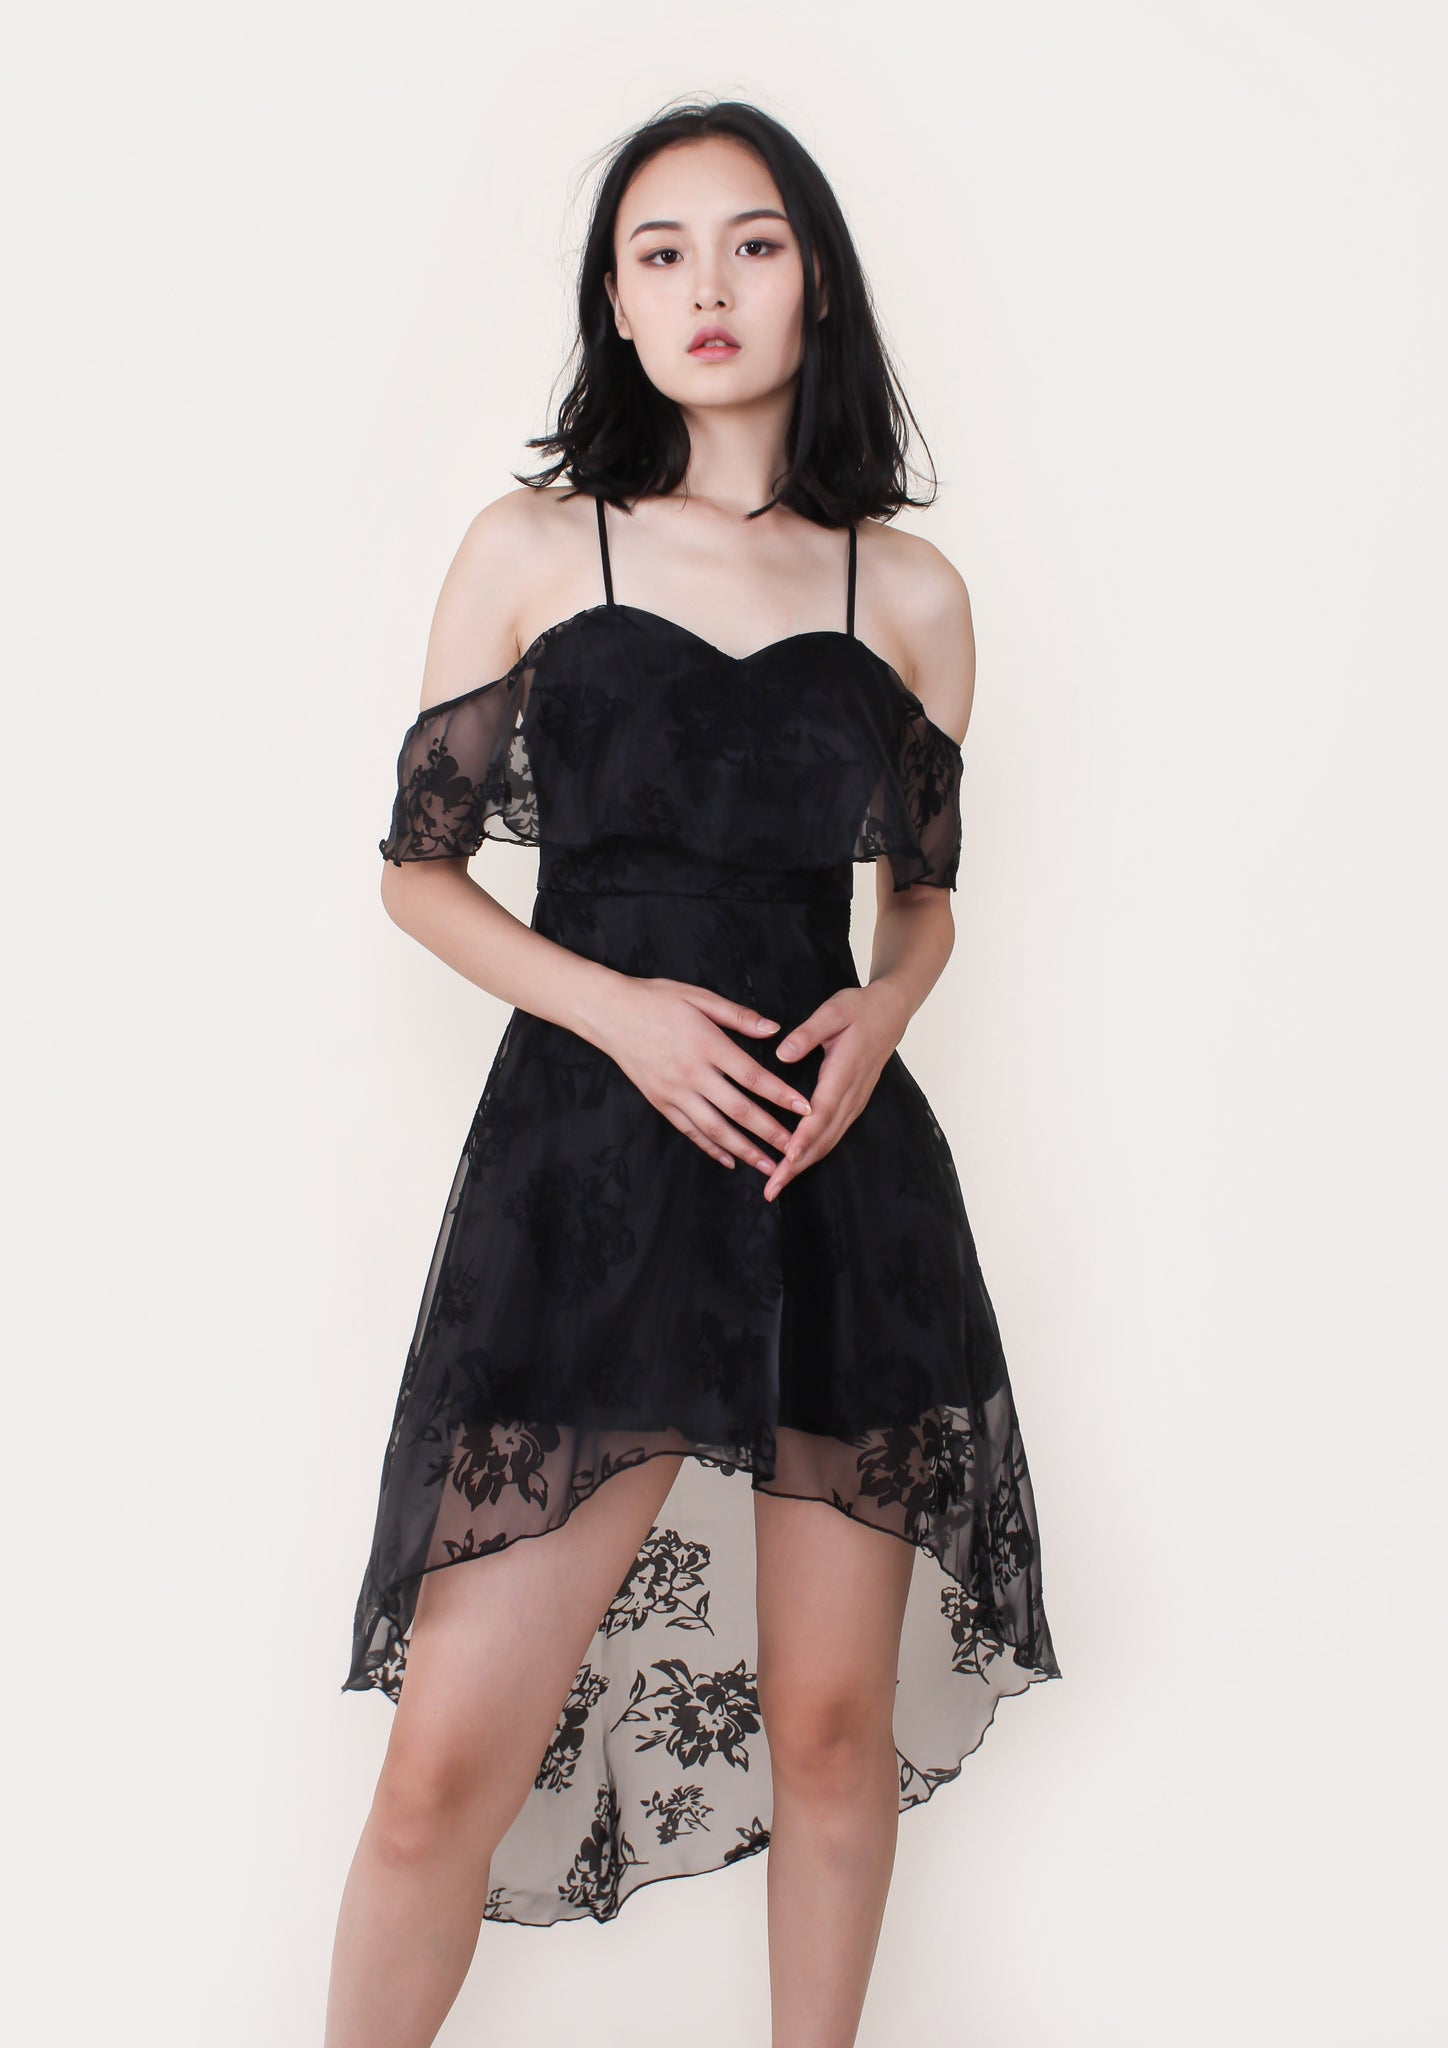 Kensington Dress (Black)